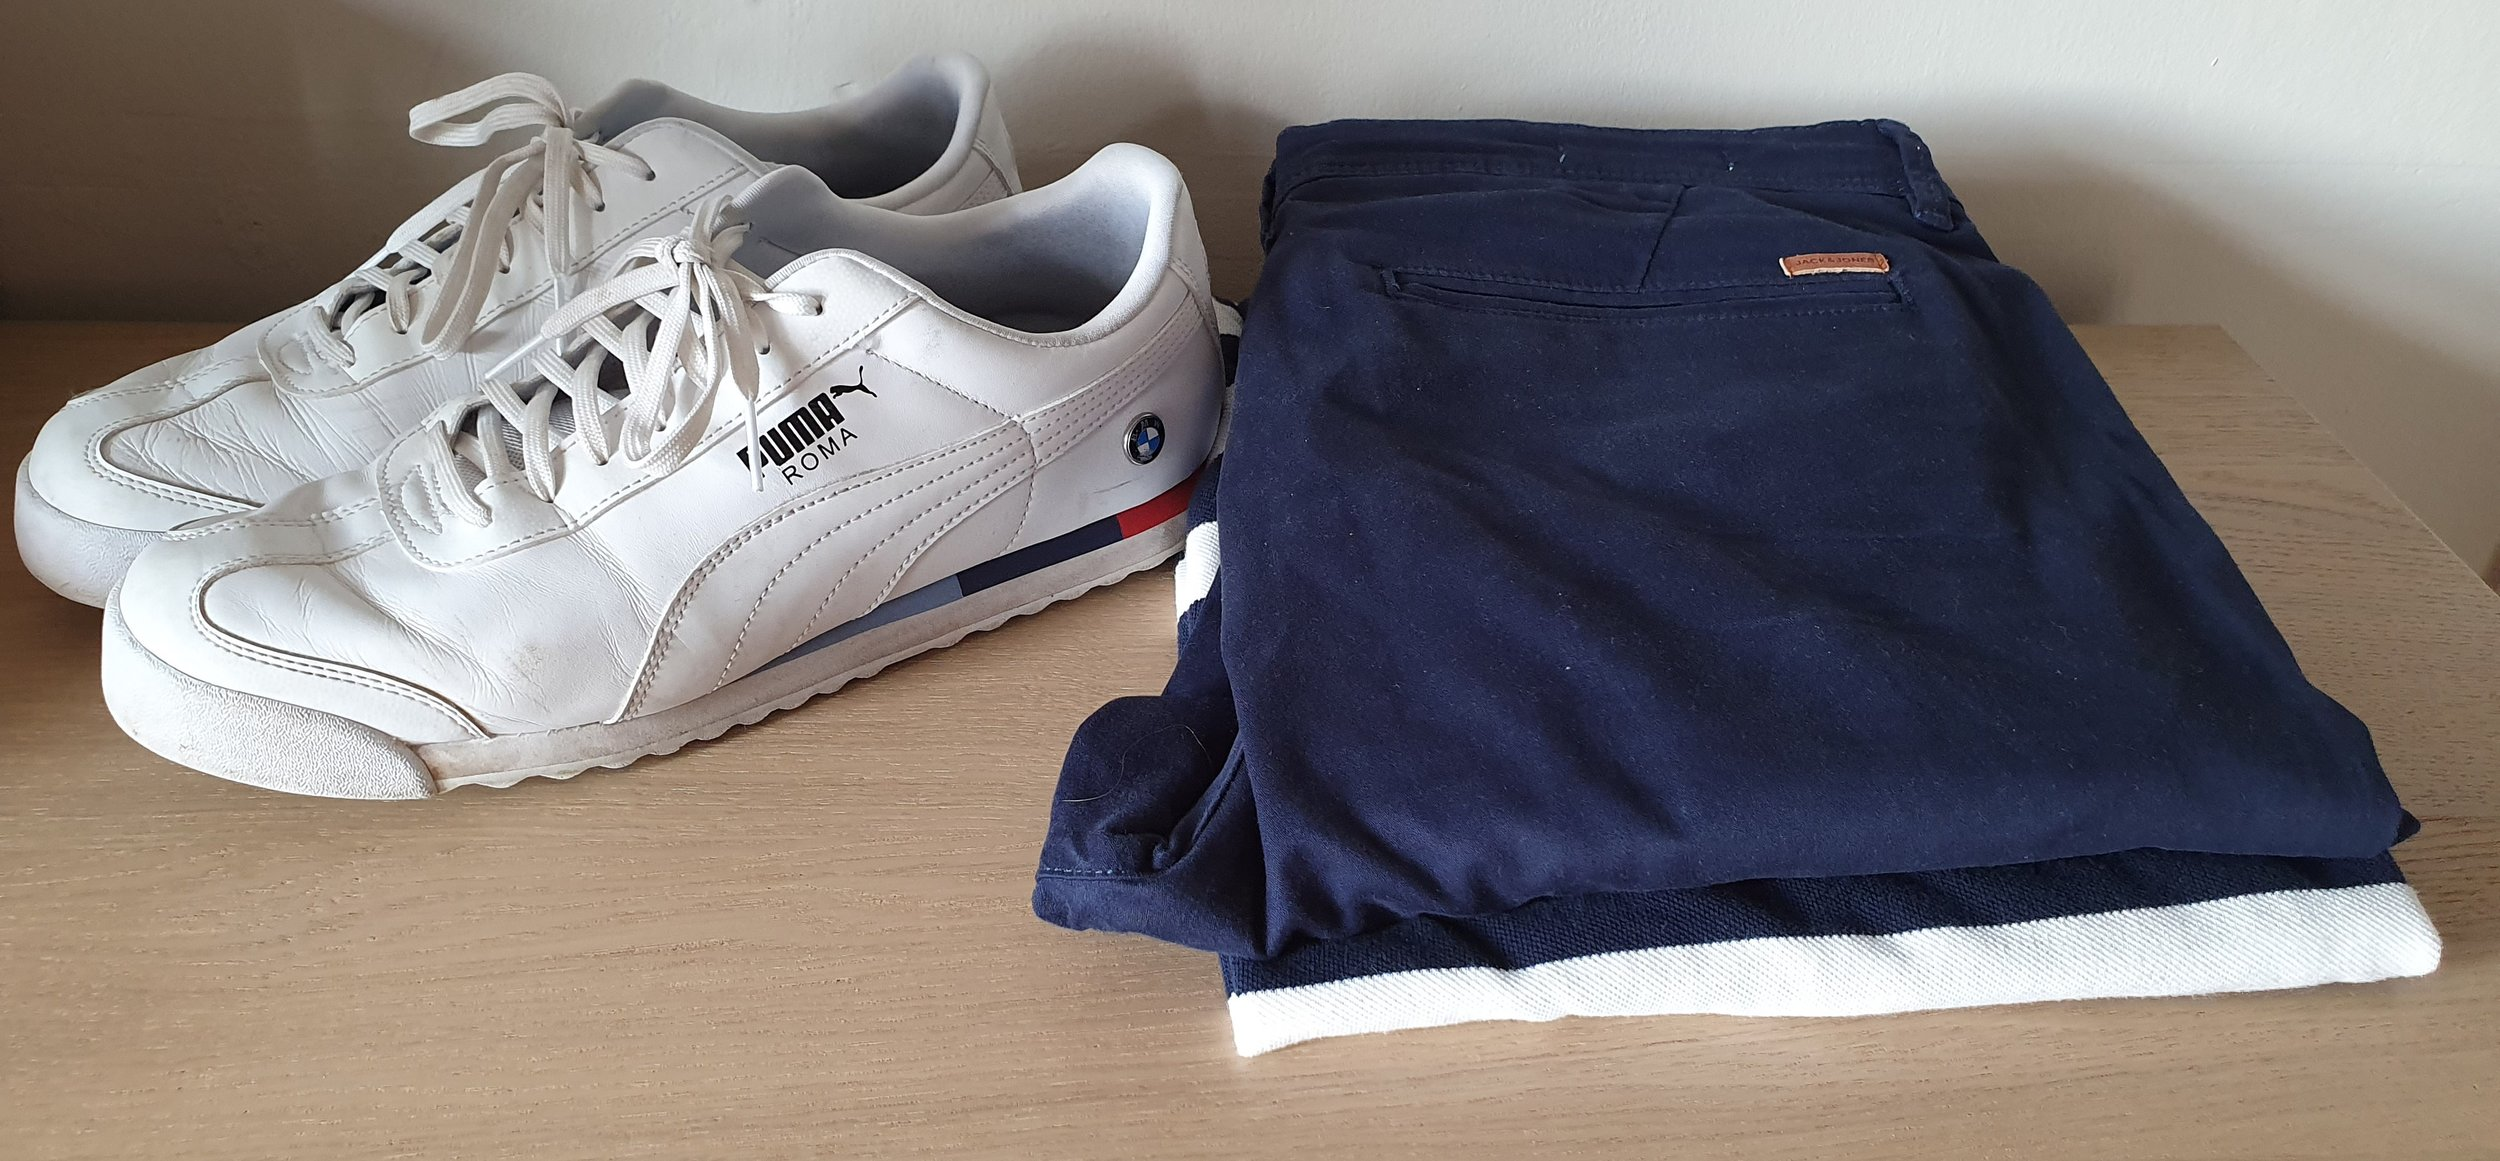 Puma Roma White Trainers, Navy Chinos by Jack & Jones, Gap Polo Shirt